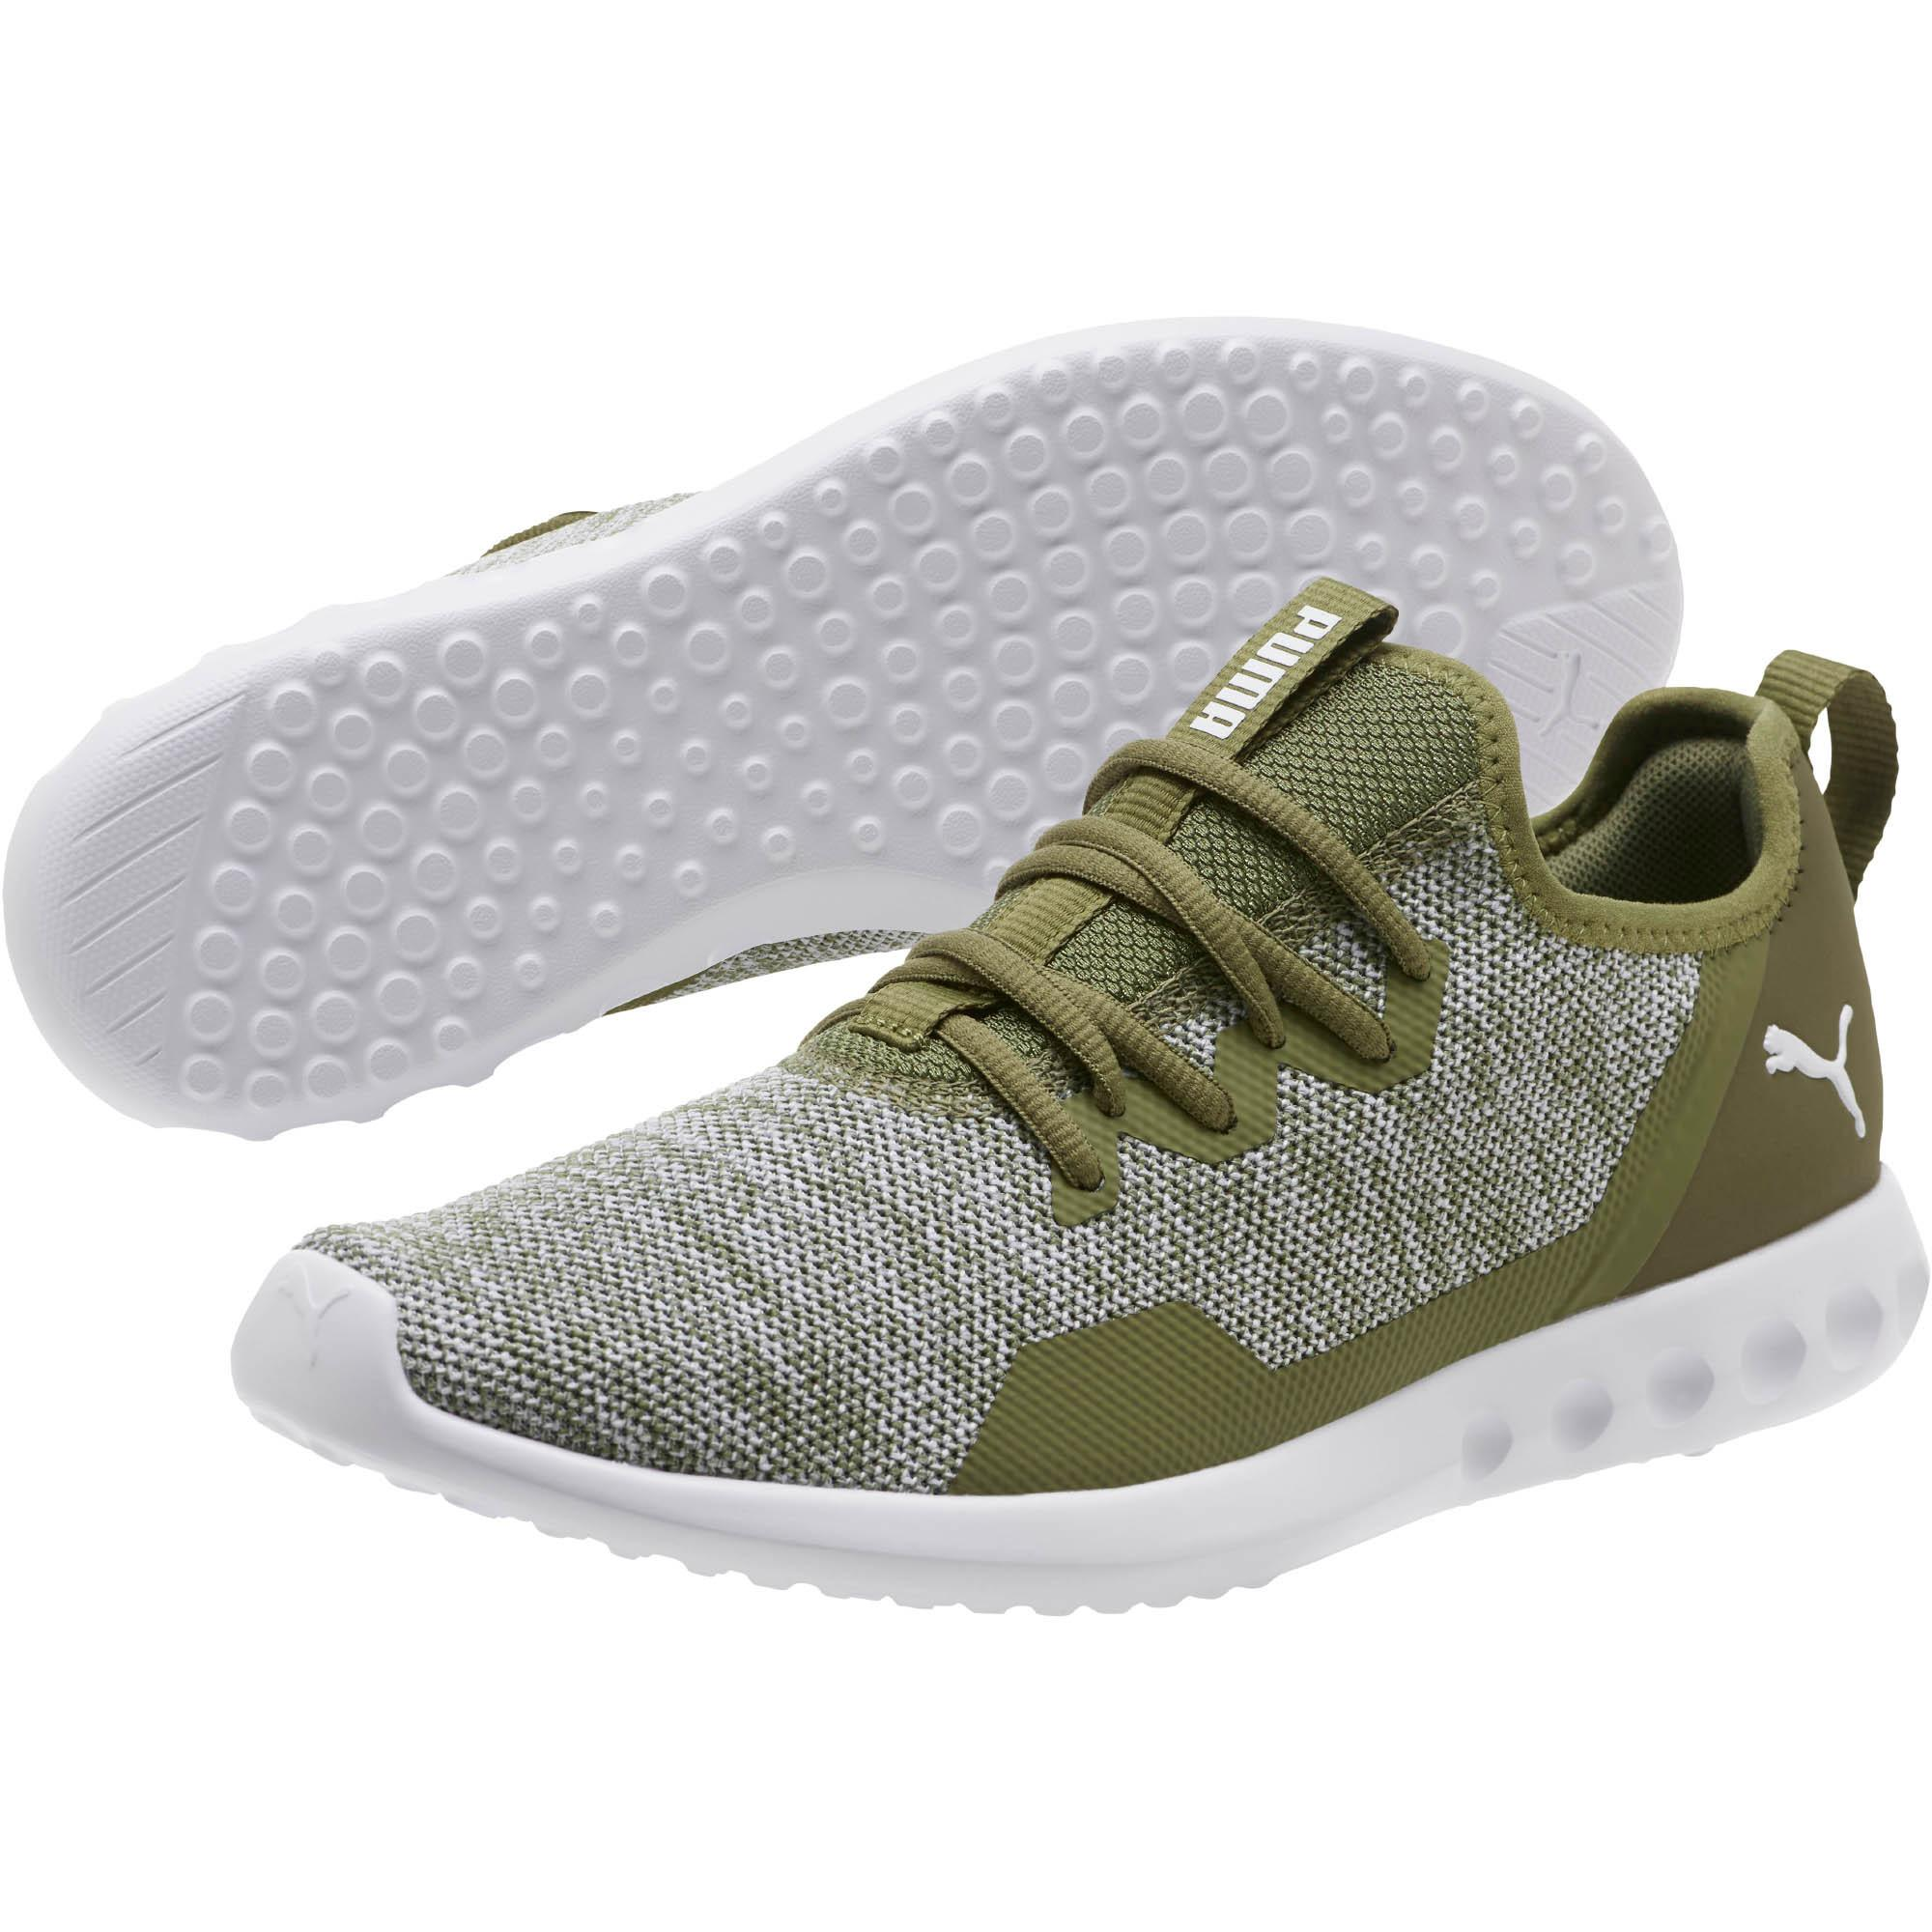 ded2d0a5ee0 PUMA - Green Carson 2 X Knit Running Shoes for Men - Lyst. View fullscreen